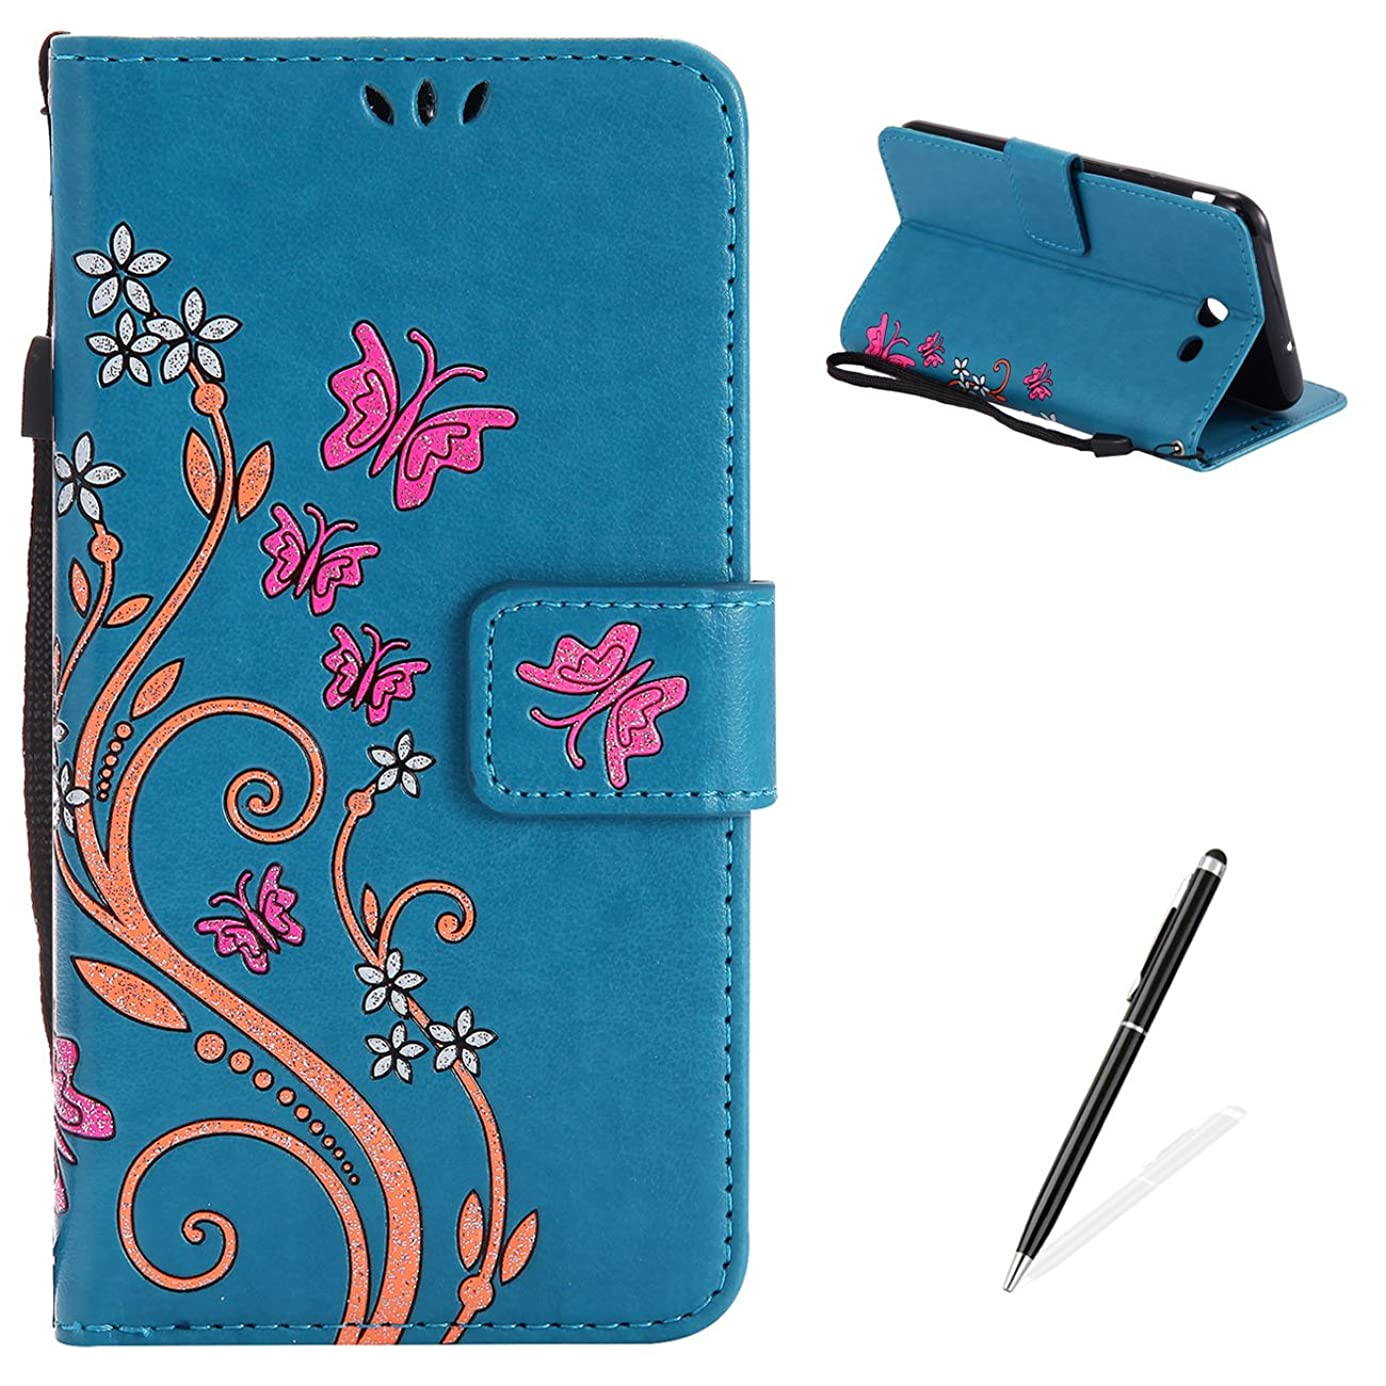 MAGQI Samsung Galaxy J7 2017 Case, Premium Slim Fit Flip PU Leather Stand Wallet Book Style Case with Card Slots Magnetic Closure Embossed Rose Flower Butterfly Pattern Cover